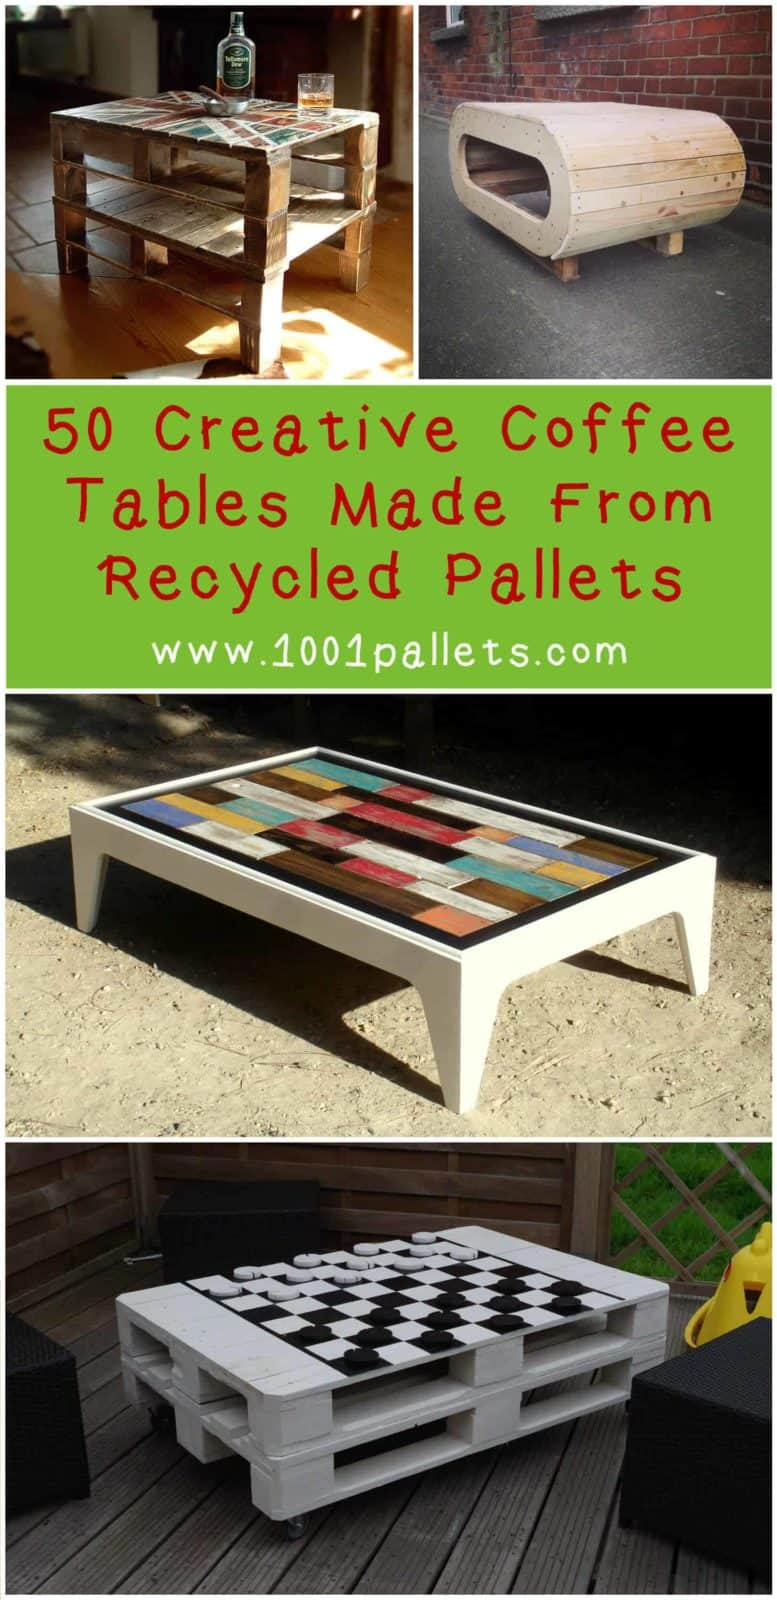 The 50 Most Creative Pallet Coffee Tables For Your Inspiration! U2022 1001  Pallets